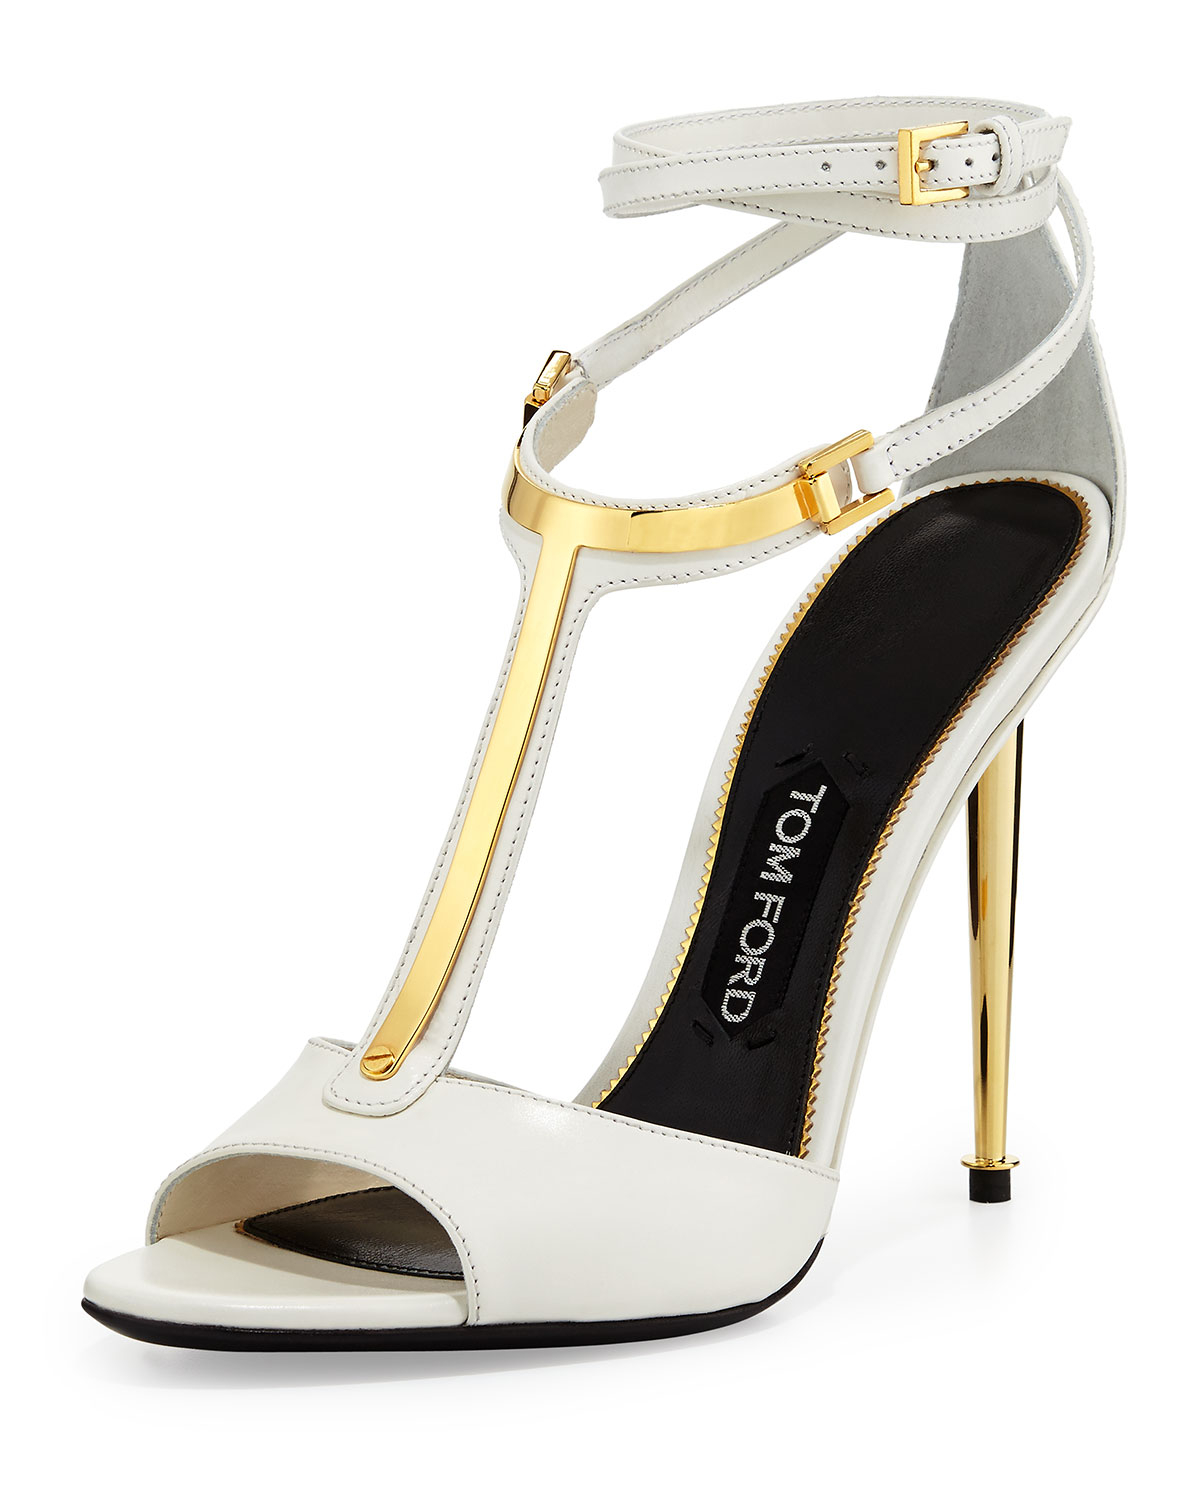 3f32f1ced2b Lyst - Tom Ford Chain Heel Leather Sandal in White